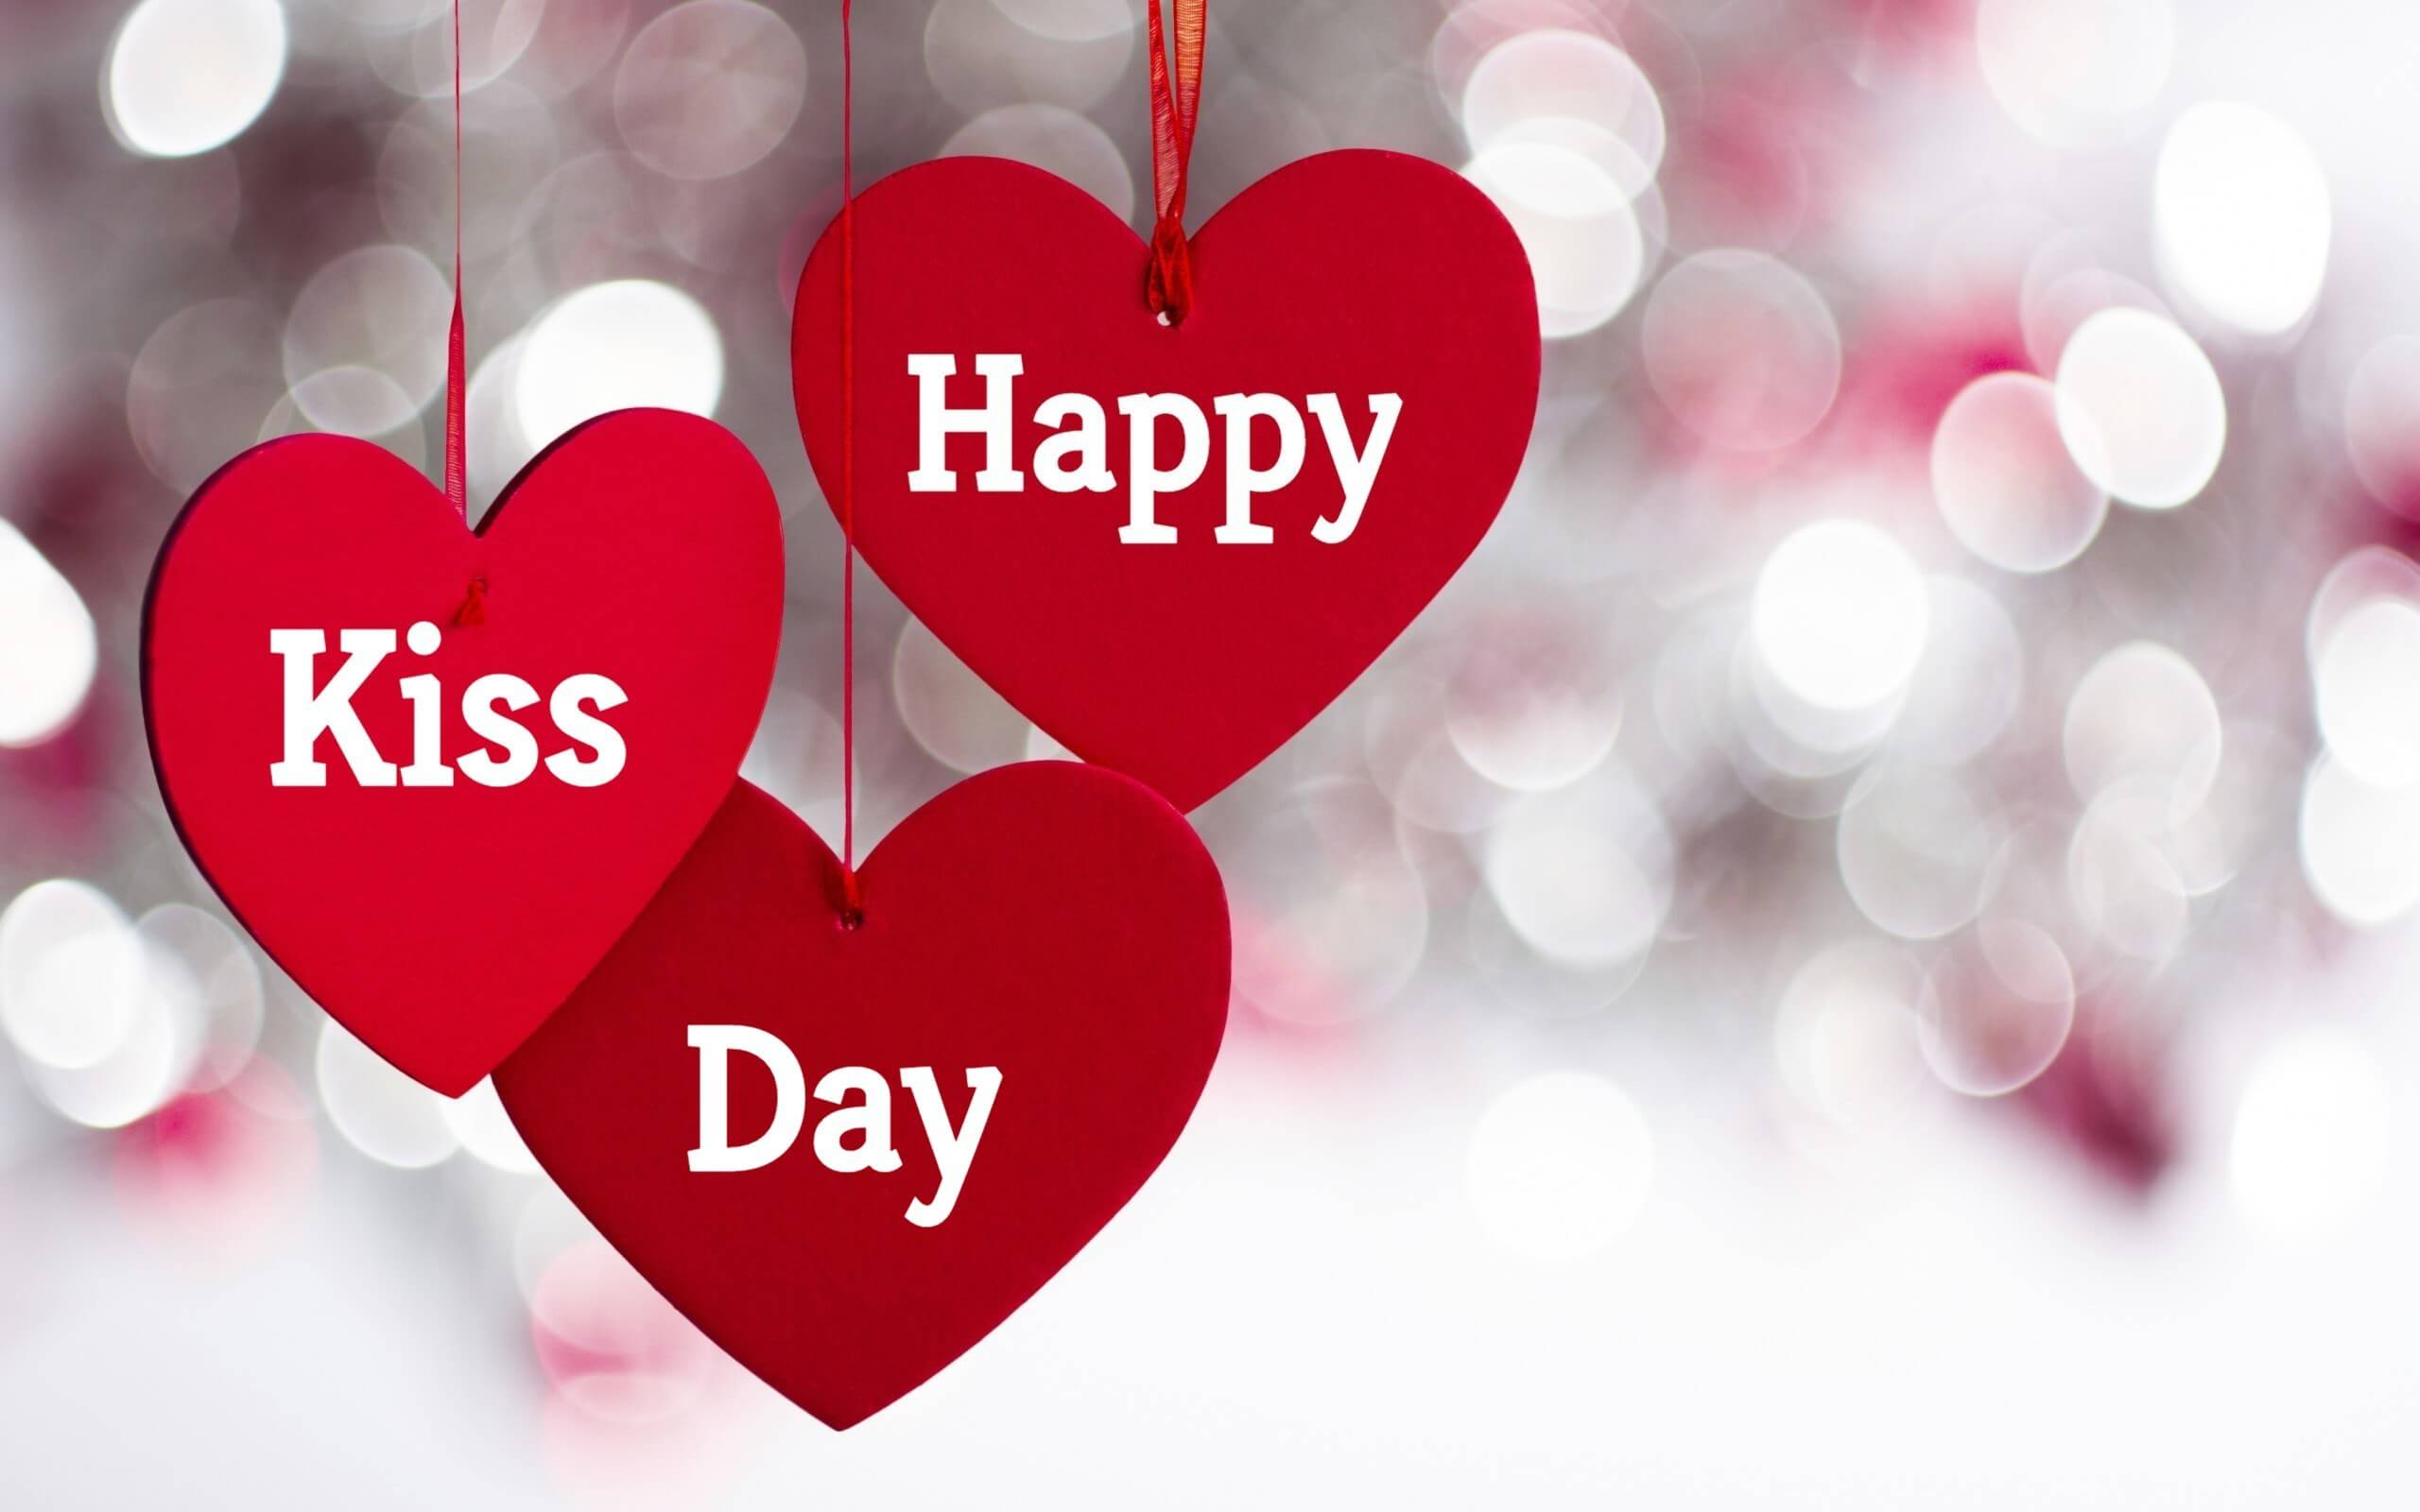 happy kiss day wishes hanging hearts love valentine february 12th hd wallpaper